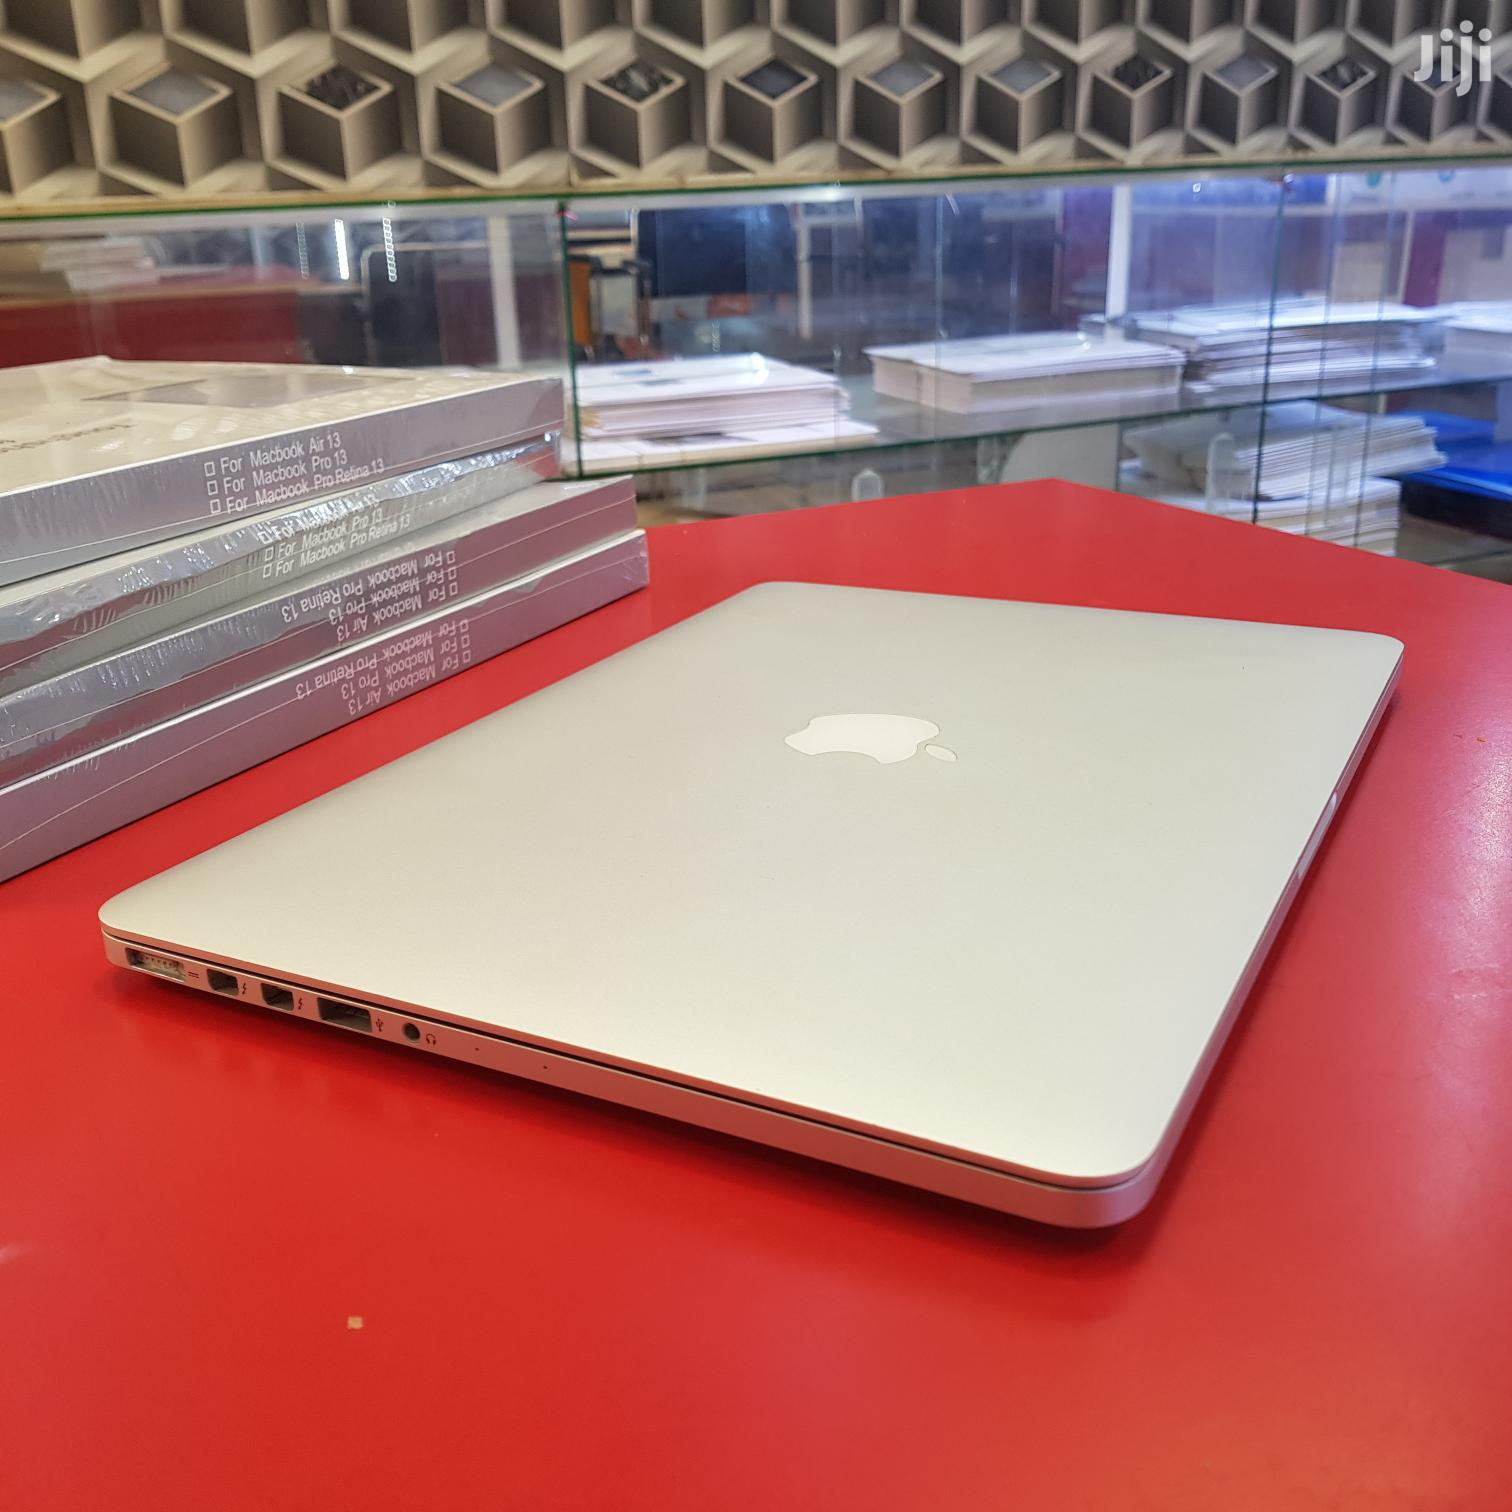 Apple MacBook Pro 13.3 Inches 128 GB SSD Core I5 8 GB RAM | Laptops & Computers for sale in Kampala, Central Region, Uganda